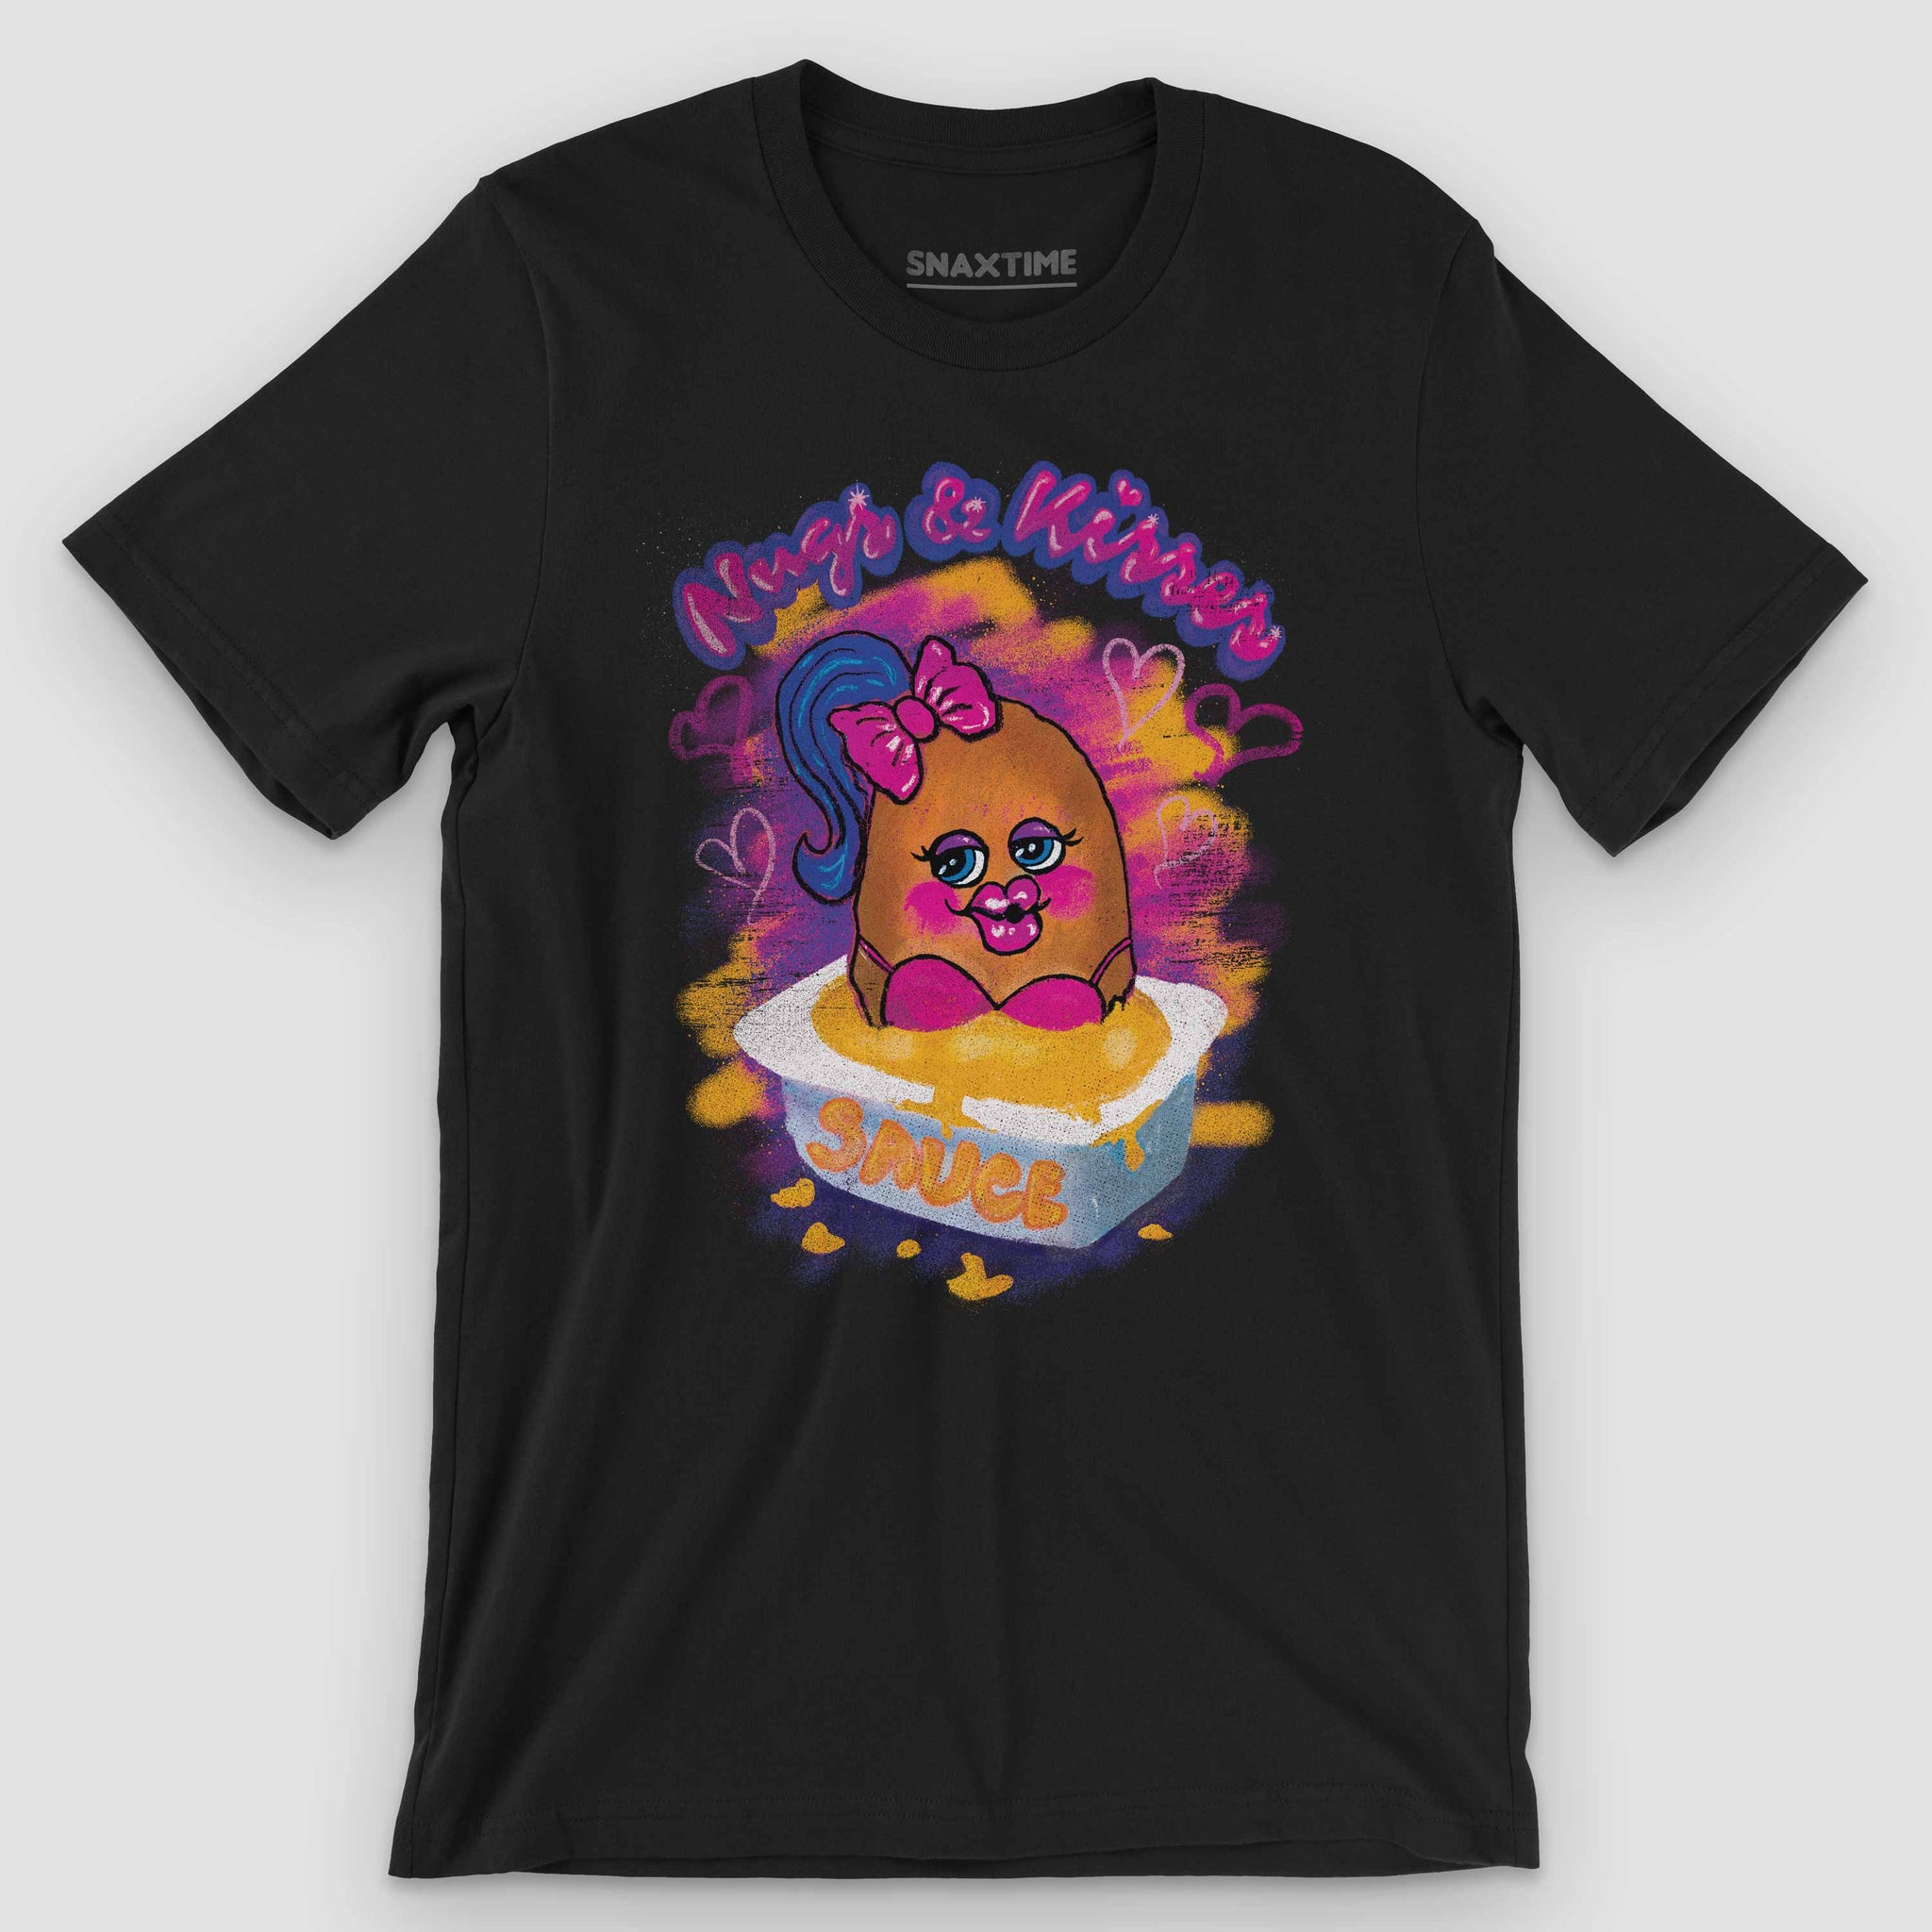 Nugs and Kisses Graphic T-Shirt